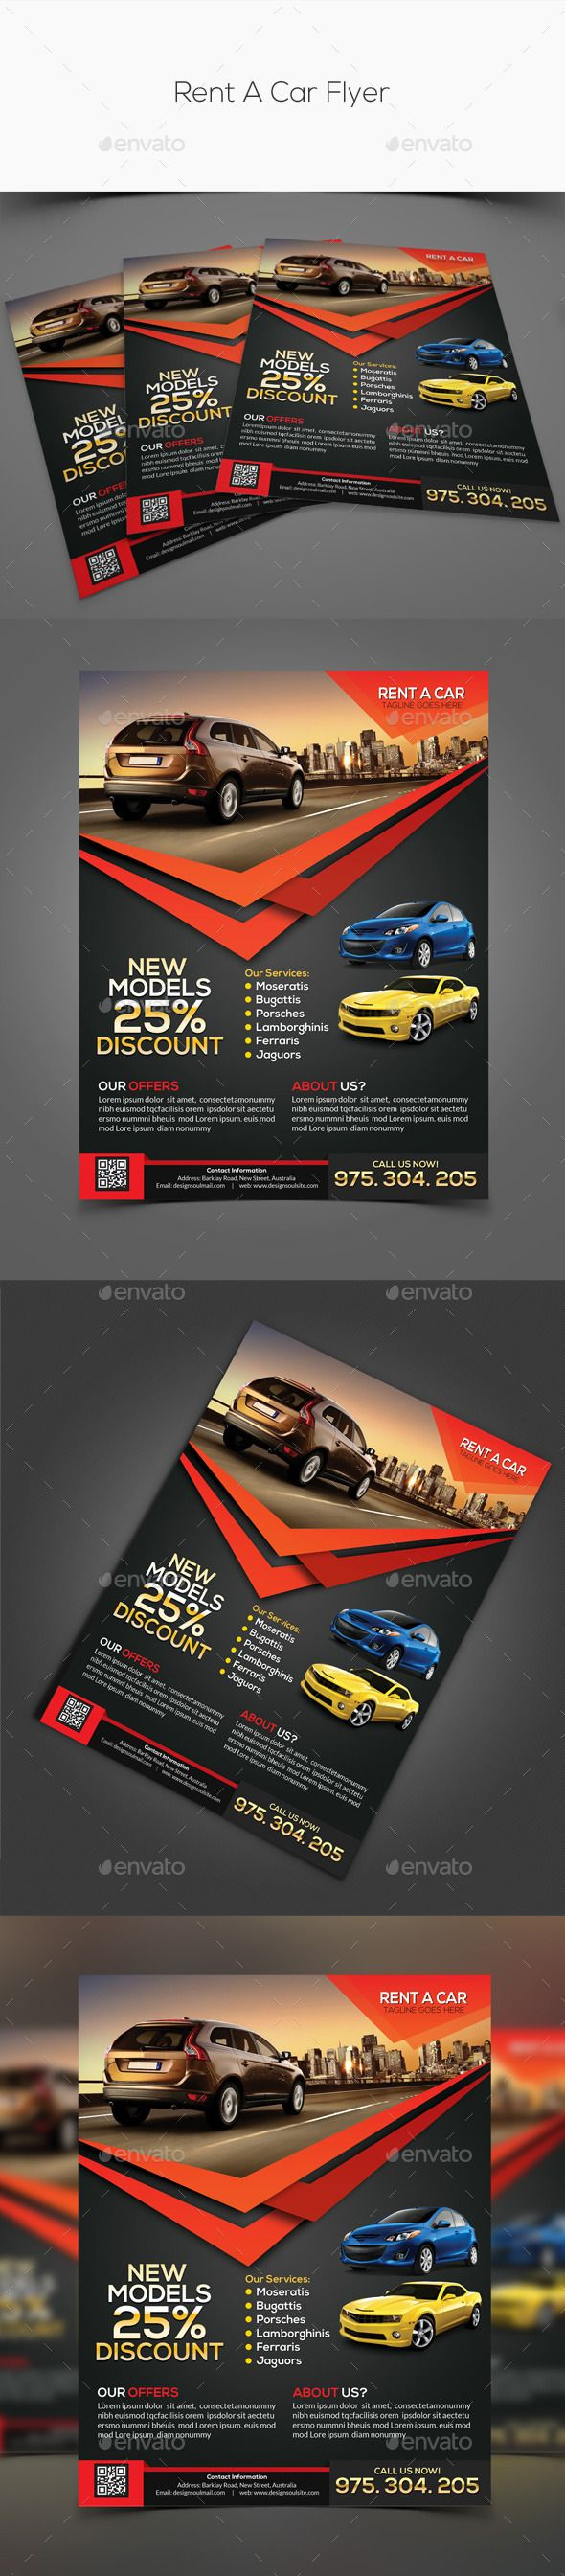 Rent A Car Flyer Corporate Flyers